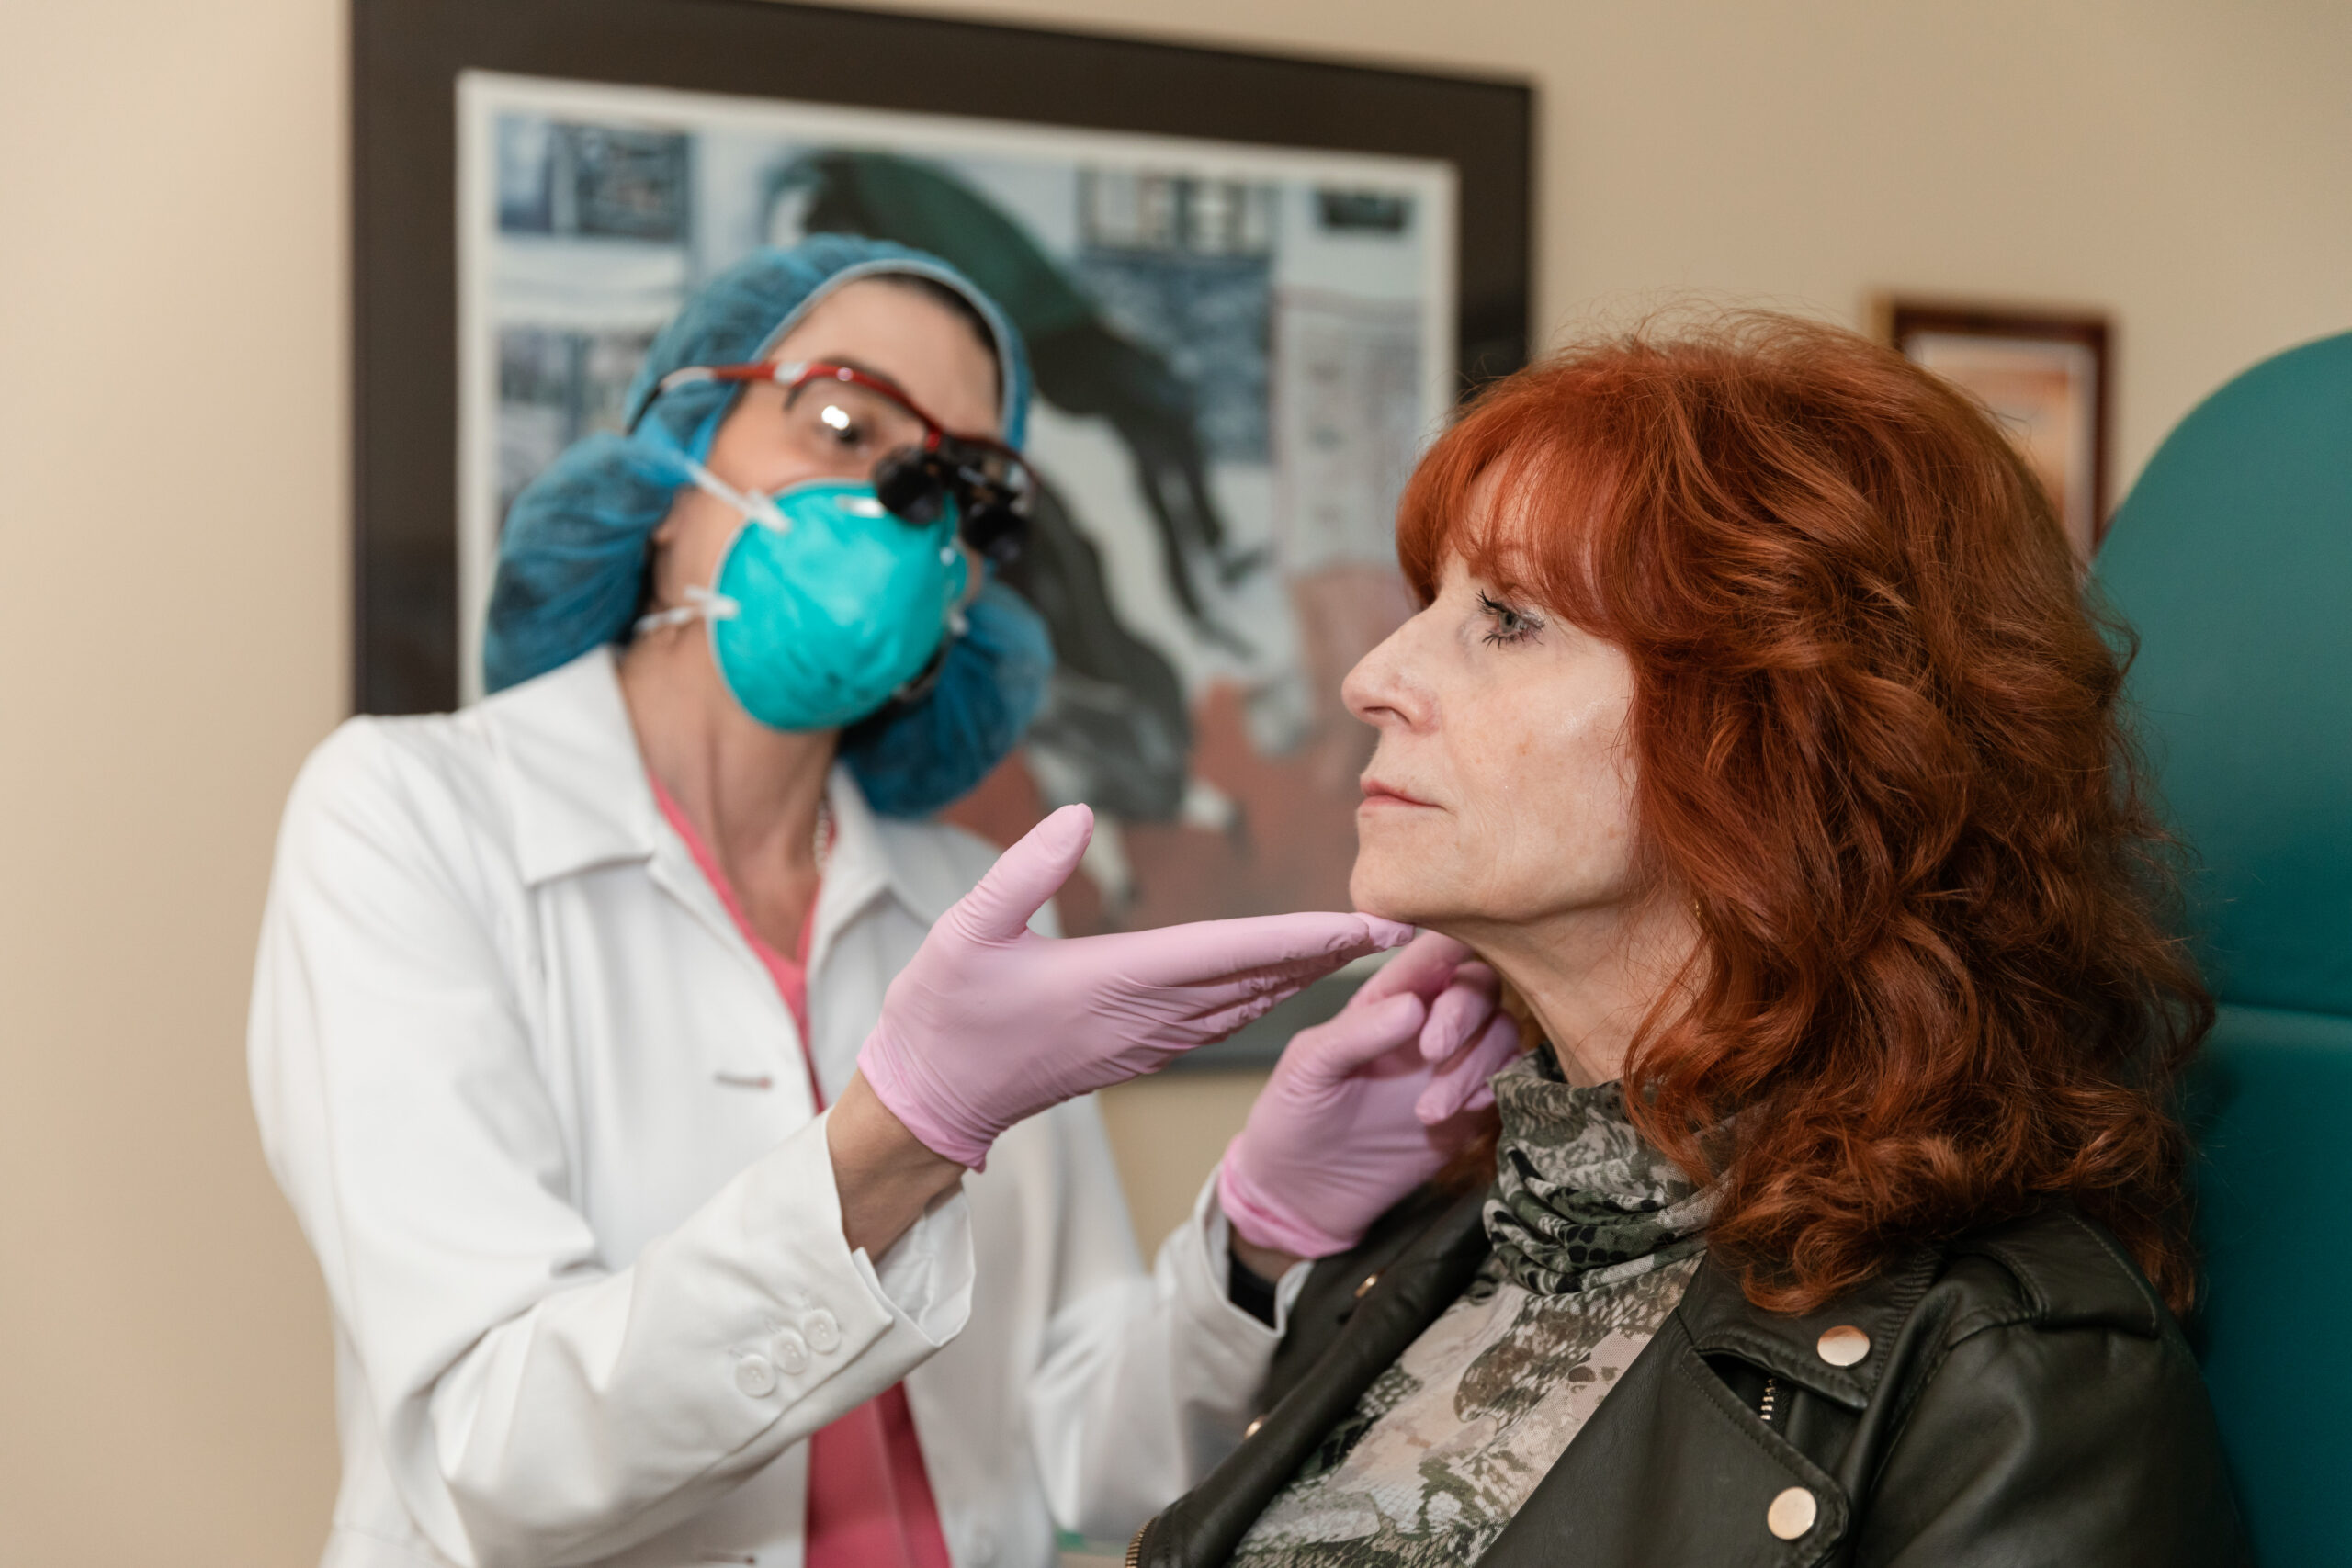 Dr. Brunner consulting with a patient for Restylane Contour dermal filler injections in Princeton, NJ